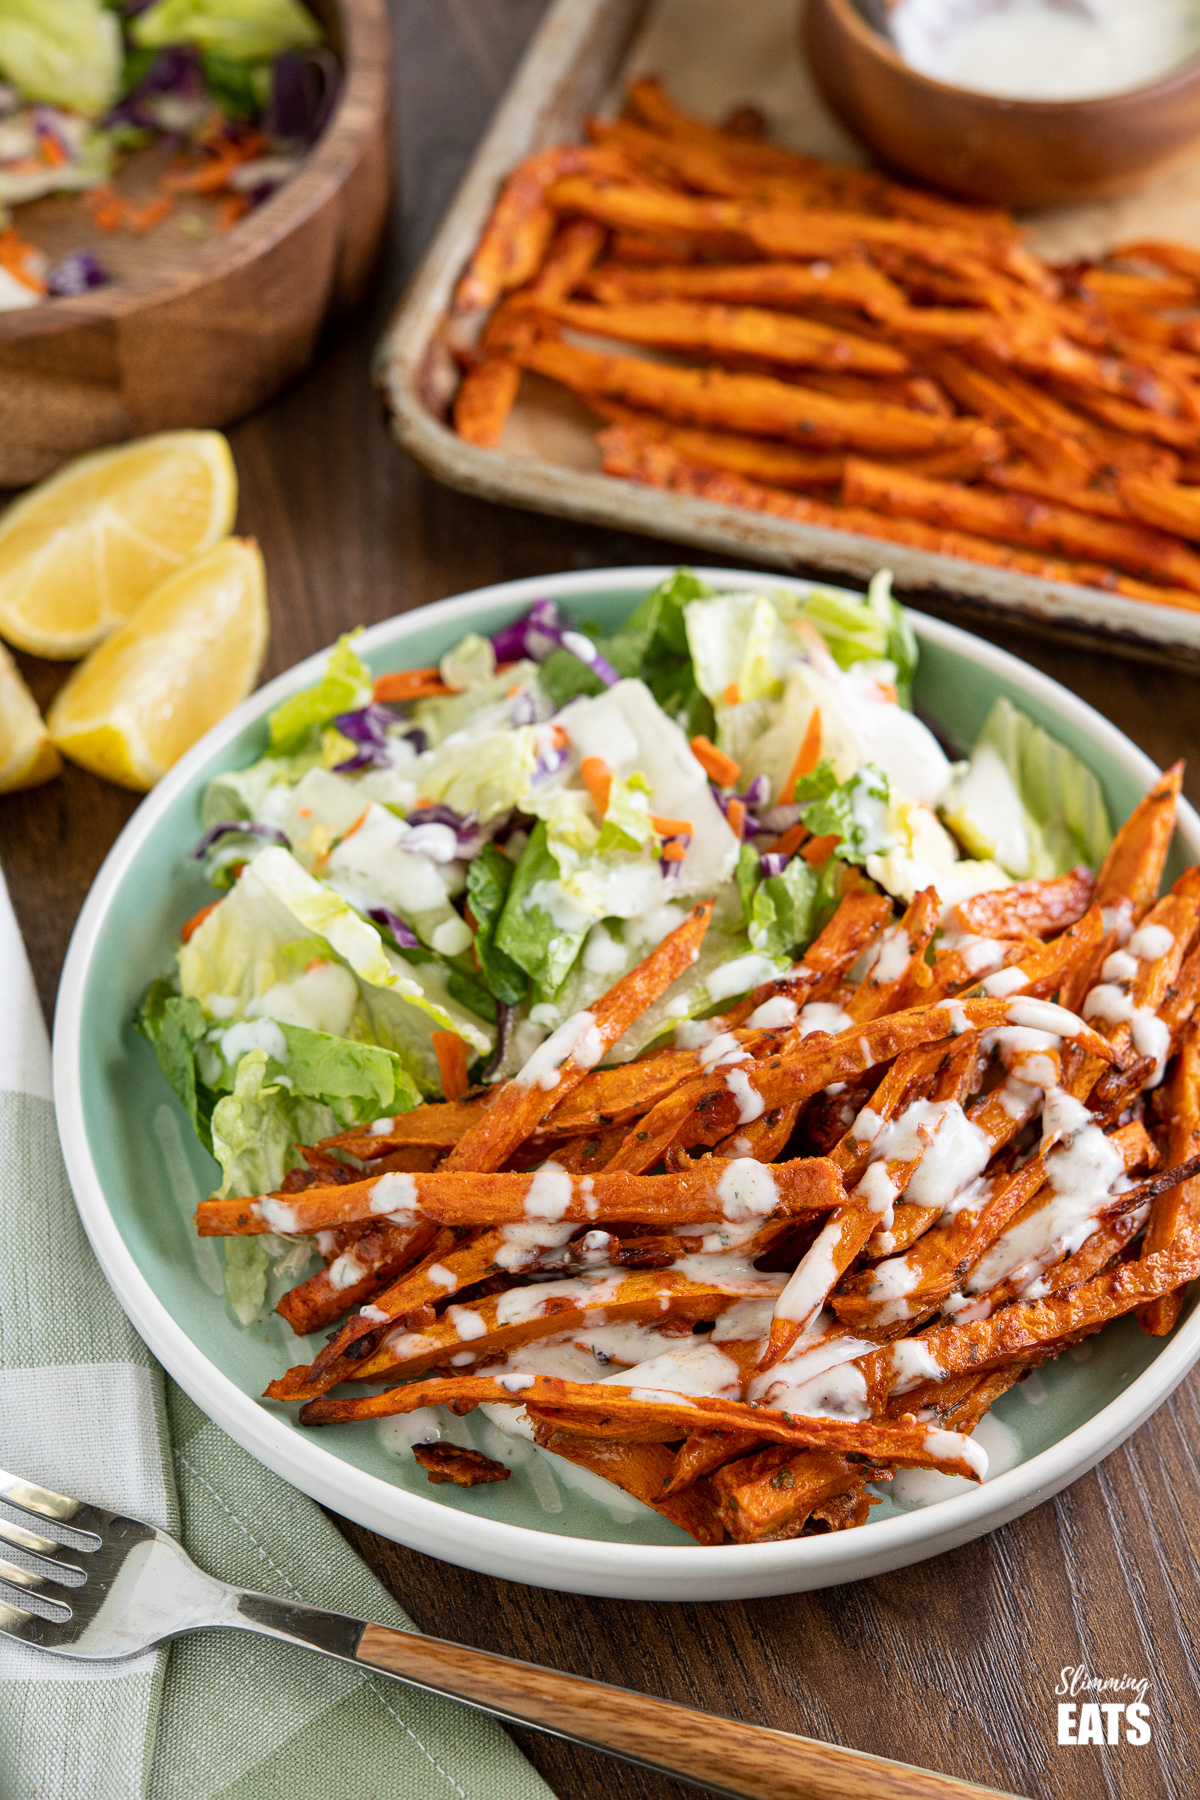 Parmesan Sweet Potato Fries on light teal plate with salad and ranch dressing, lemon slices and tray of sweet potato fries in background